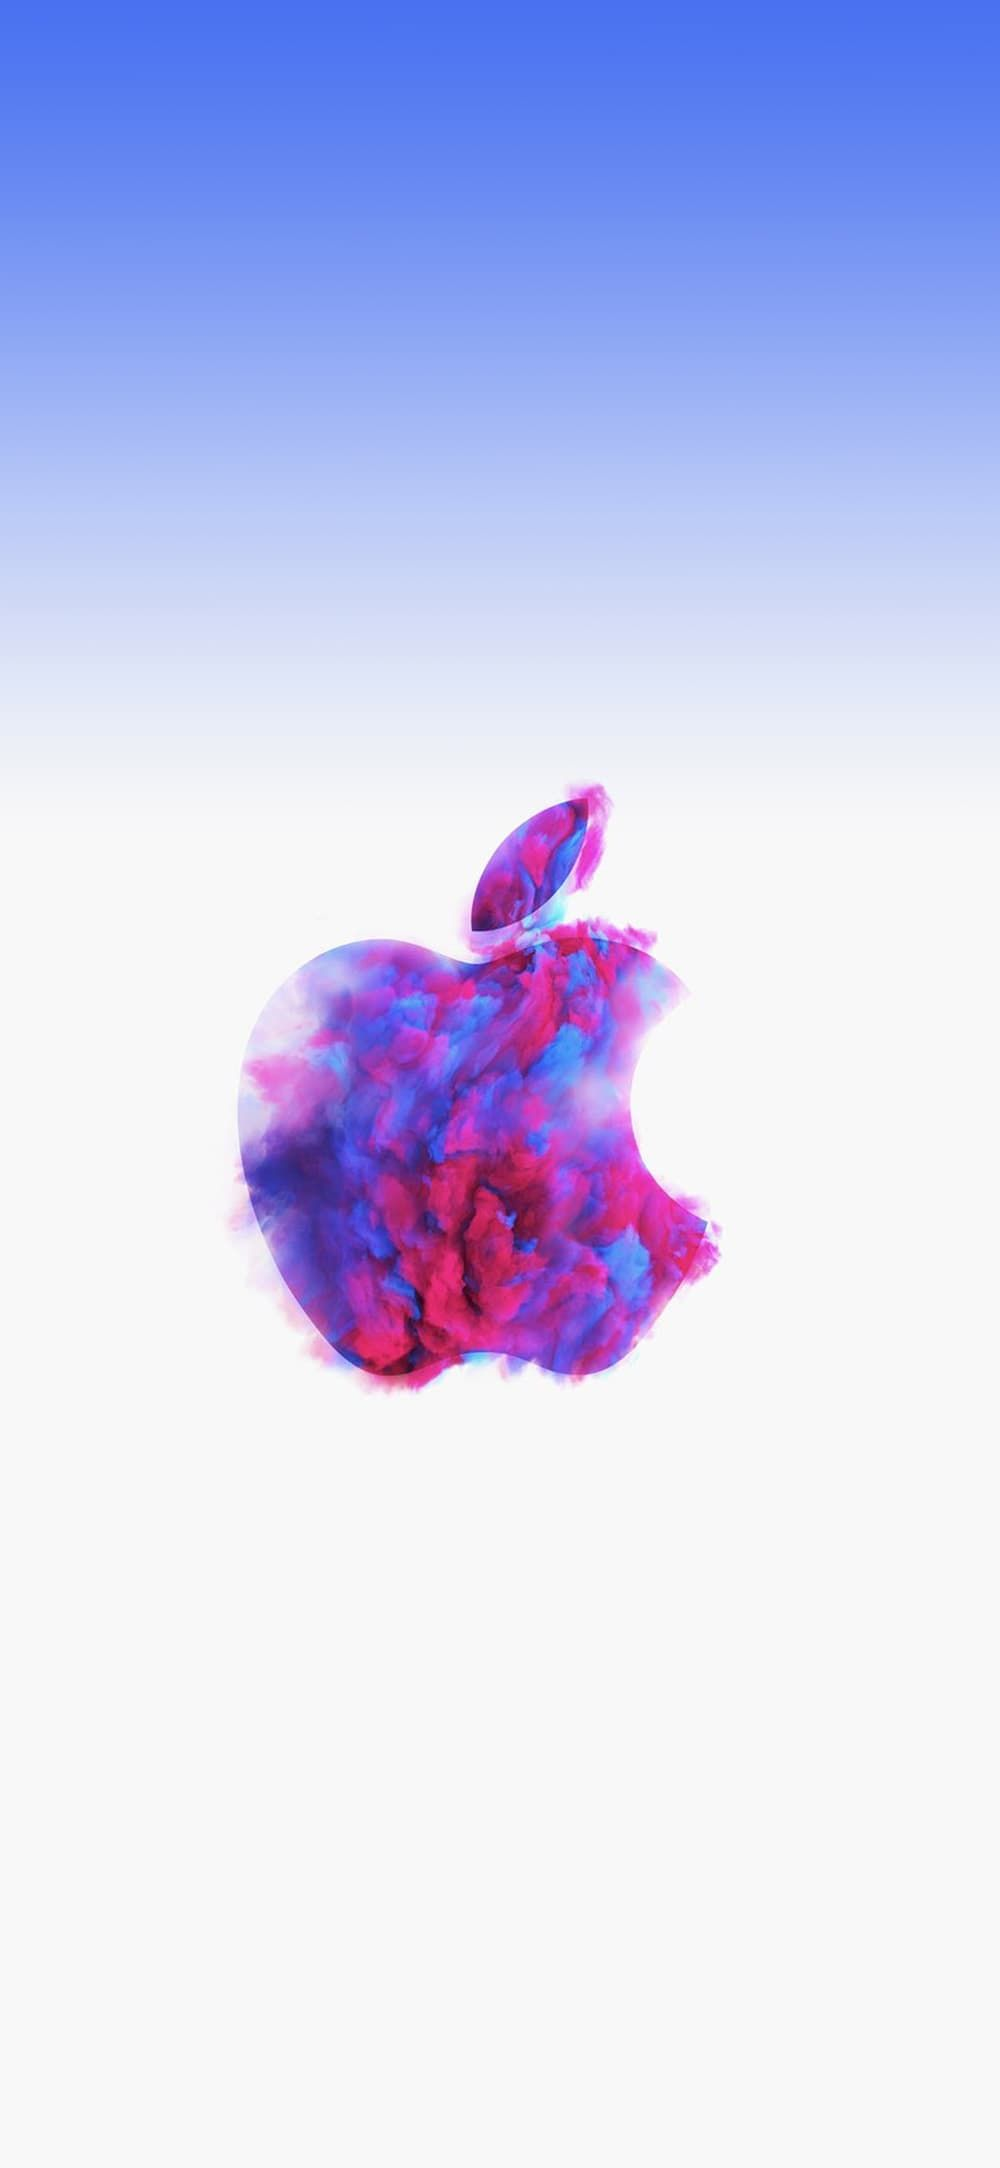 خلفيات ايفون 11 Apple Wallpaper Apple Wallpaper Iphone Iphone Wallpaper